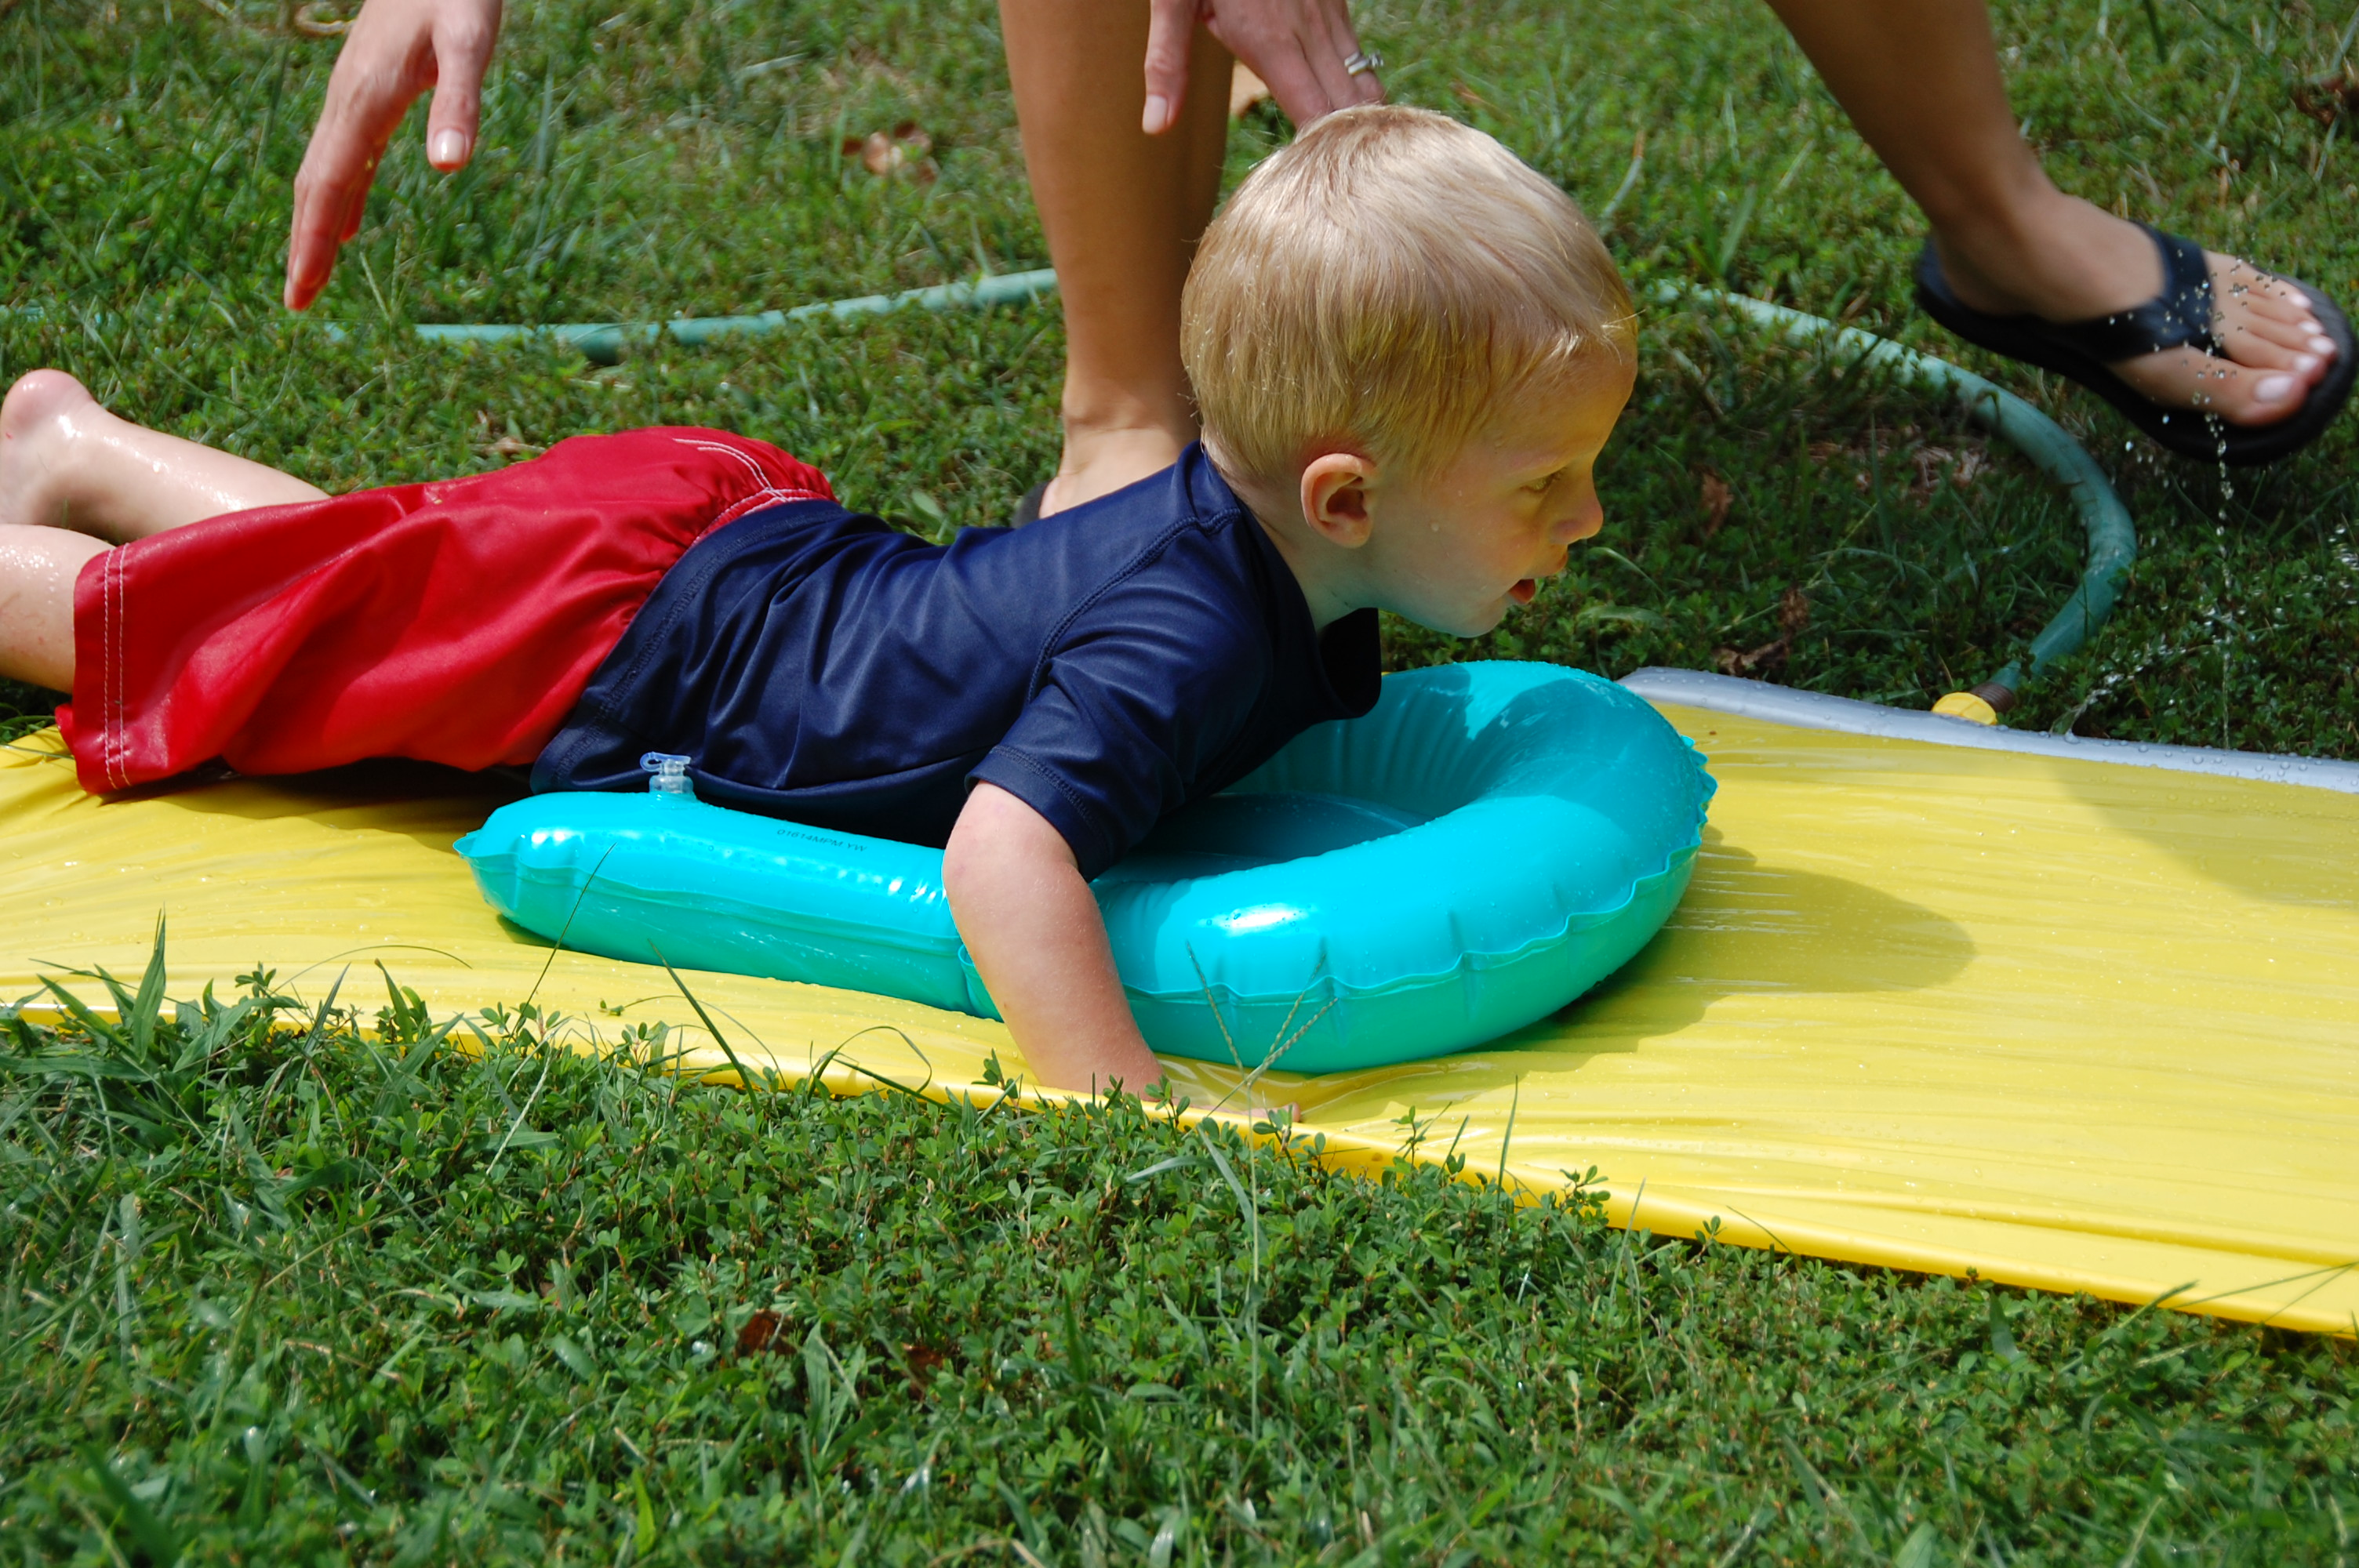 Kolby trying out the slip n slide.